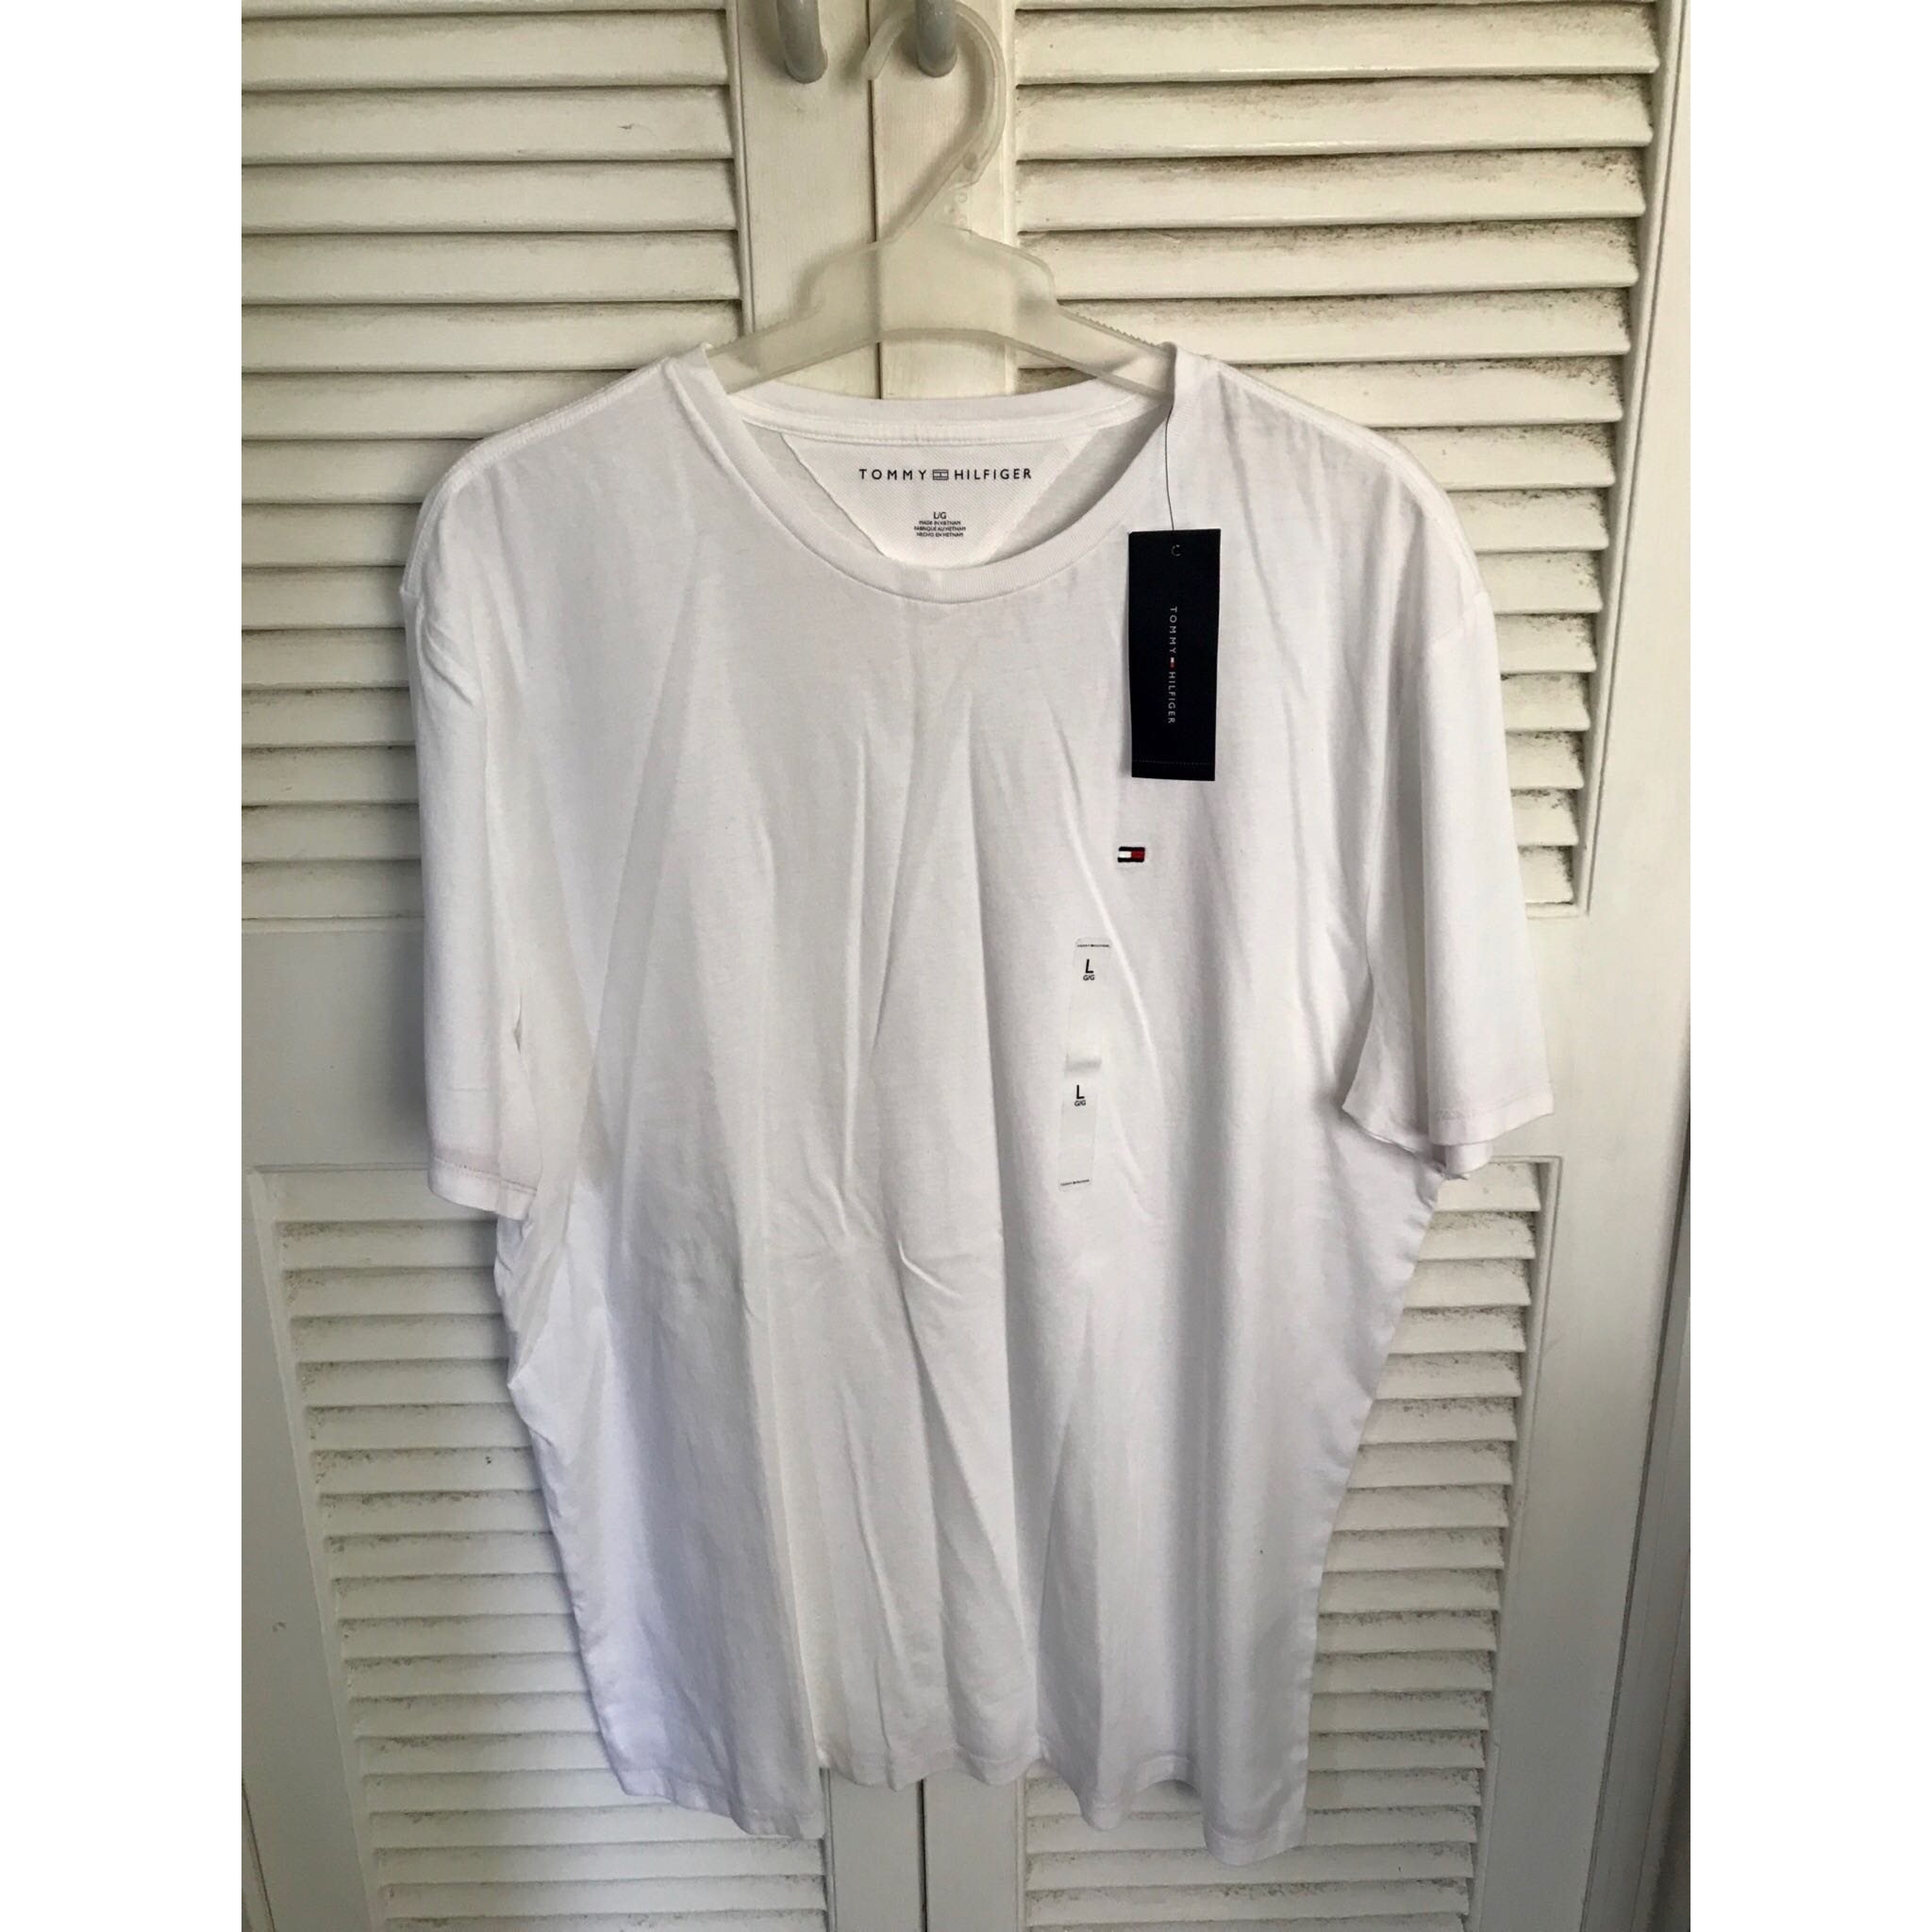 Tommy Hilfiger White T Shirt